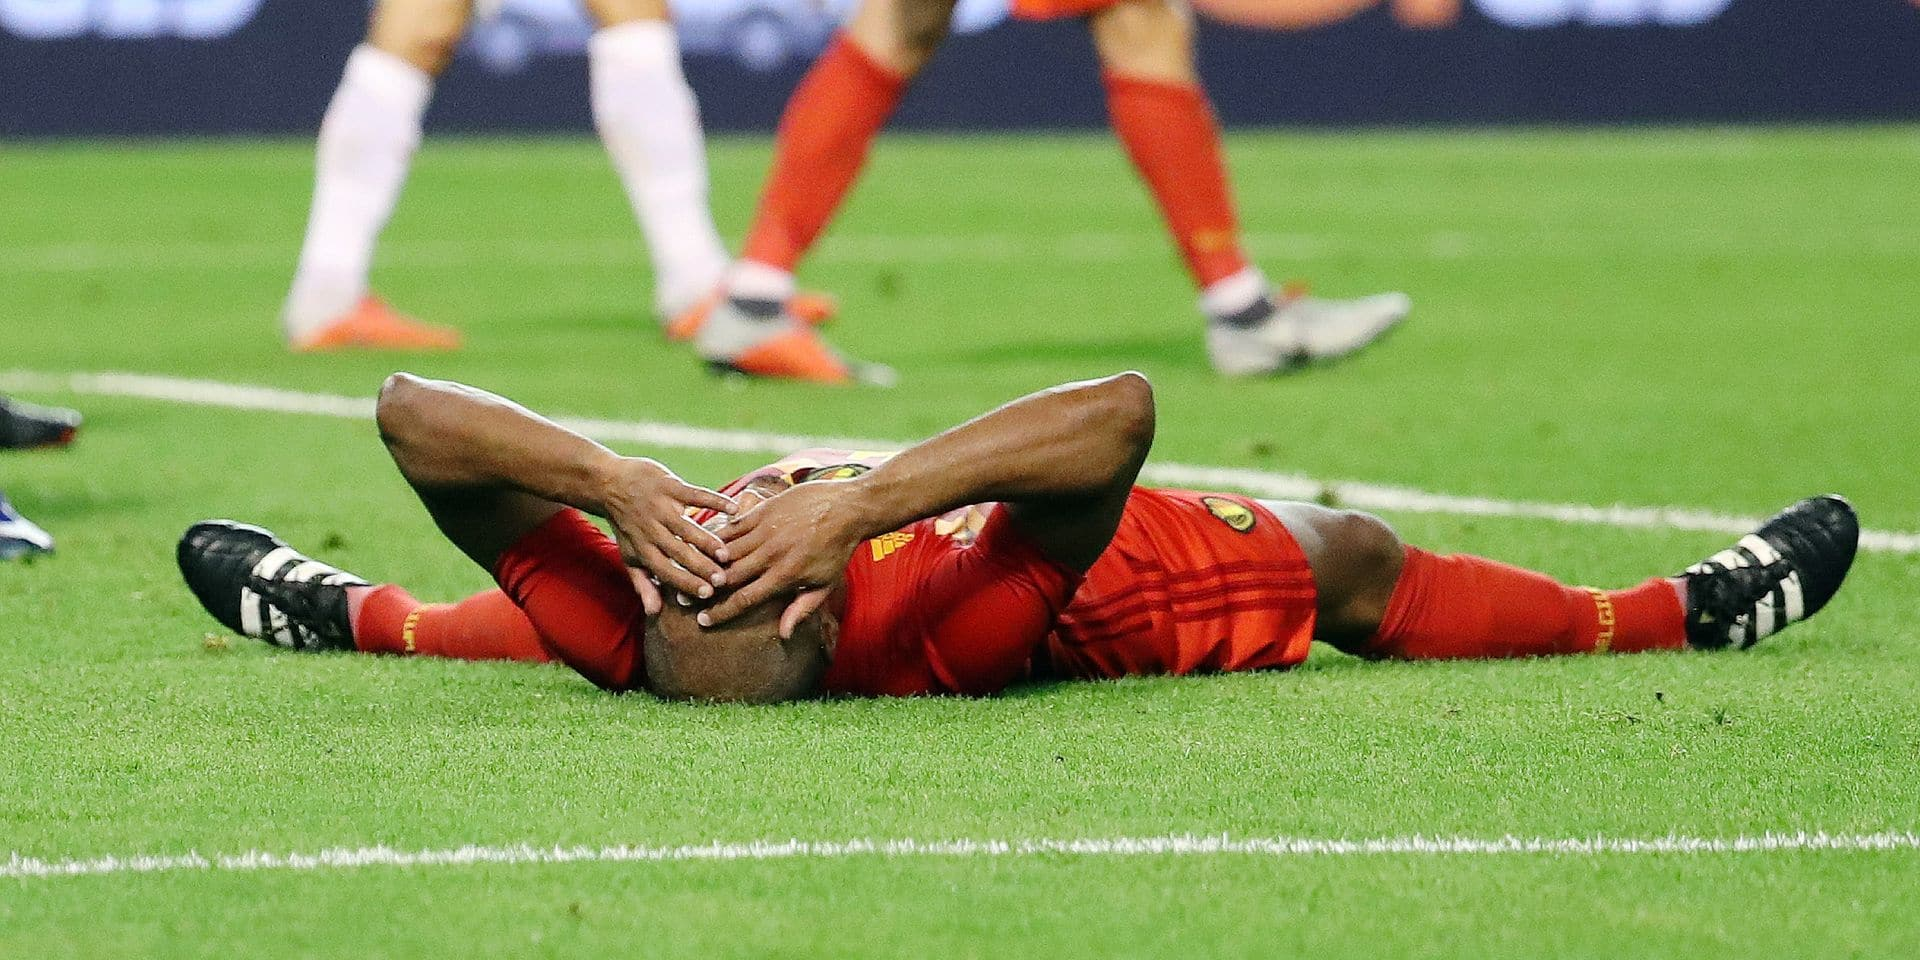 Belgium's Vincent Kompany looks dejected during a soccer game between Belgian national team the Red Devils and Switzerland in Brussels, Friday 12 October 2018, the second game in group 2 of the UEFA Nations League A competition. BELGA PHOTO VIRGINIE LEFOUR